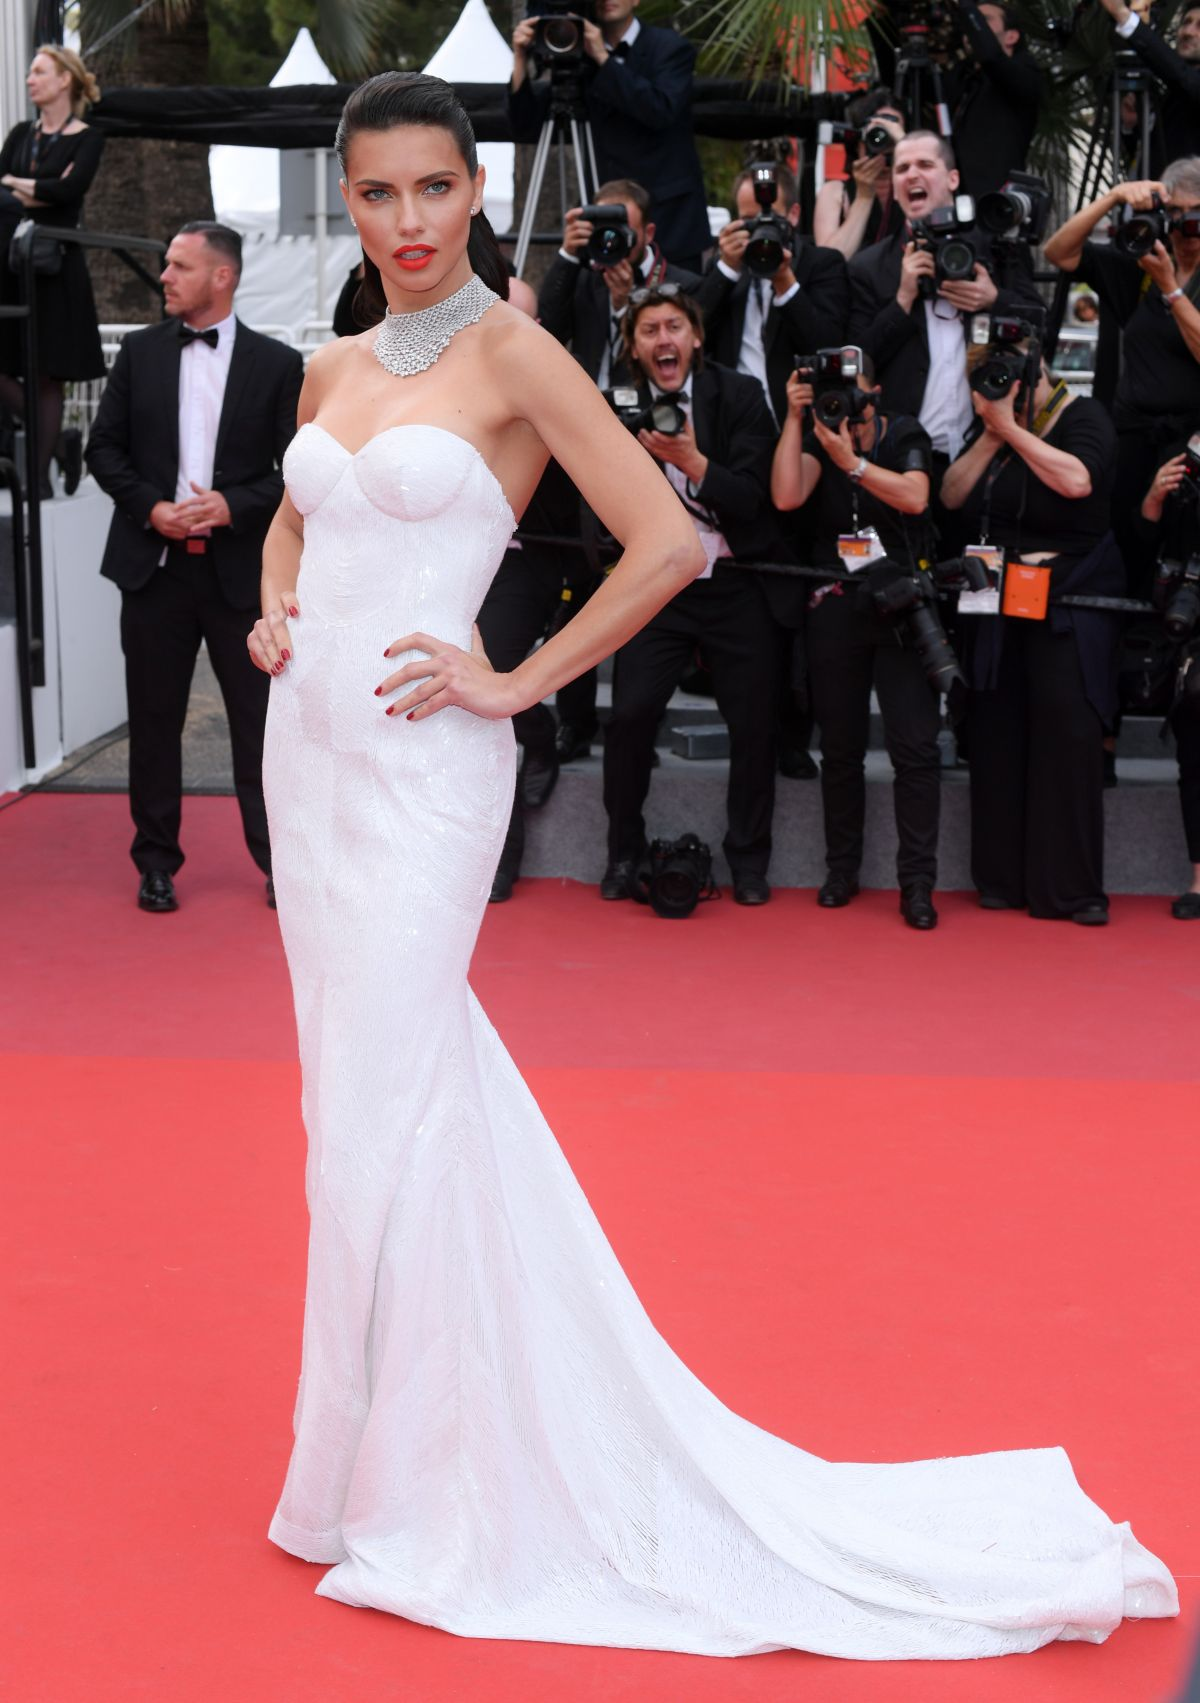 adriana-lima-at-loveless-premiere-at-2017-cannes-film-festival-05-18-2017_8